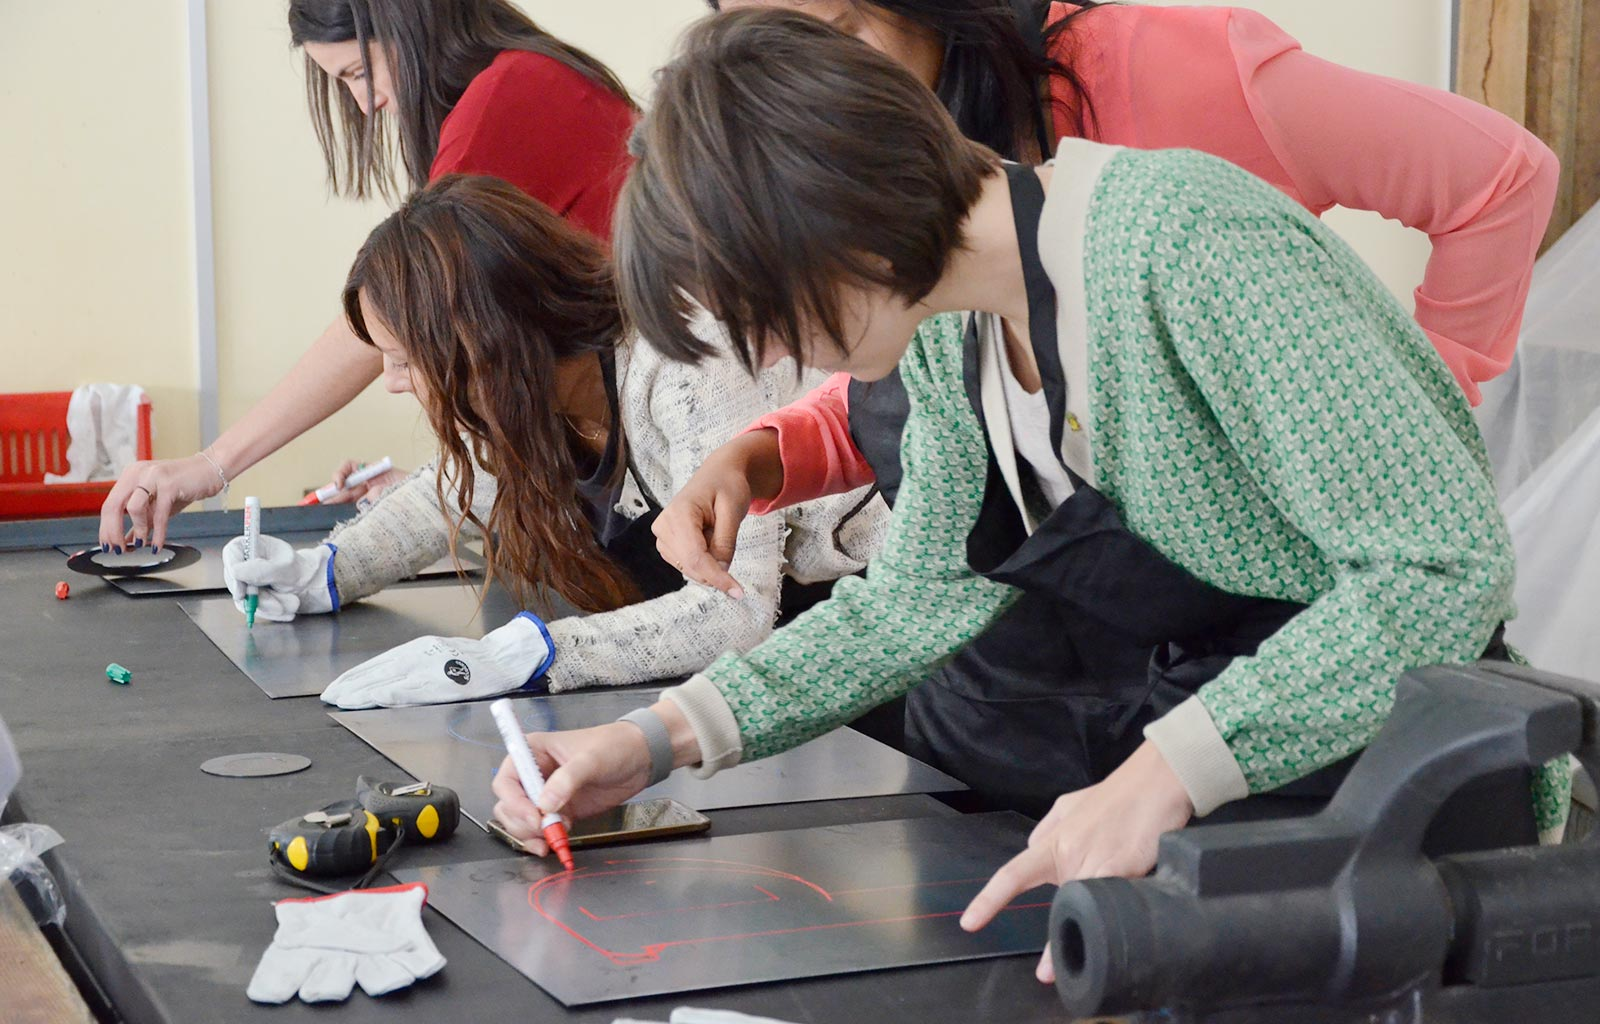 Workshop de Metales en el Taller de Kikekeller